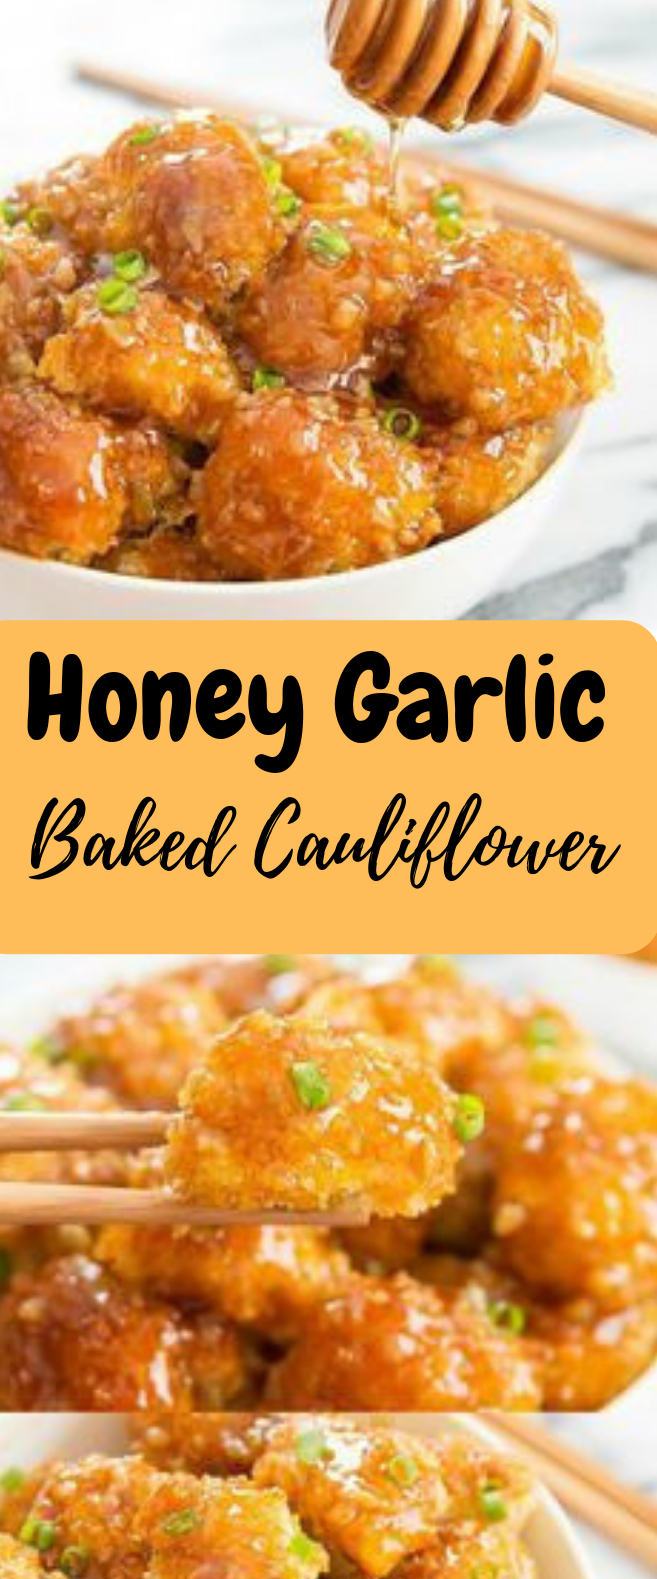 HONEY GARLIC BAKED CAULIFLOWER #vegetarian #yummy